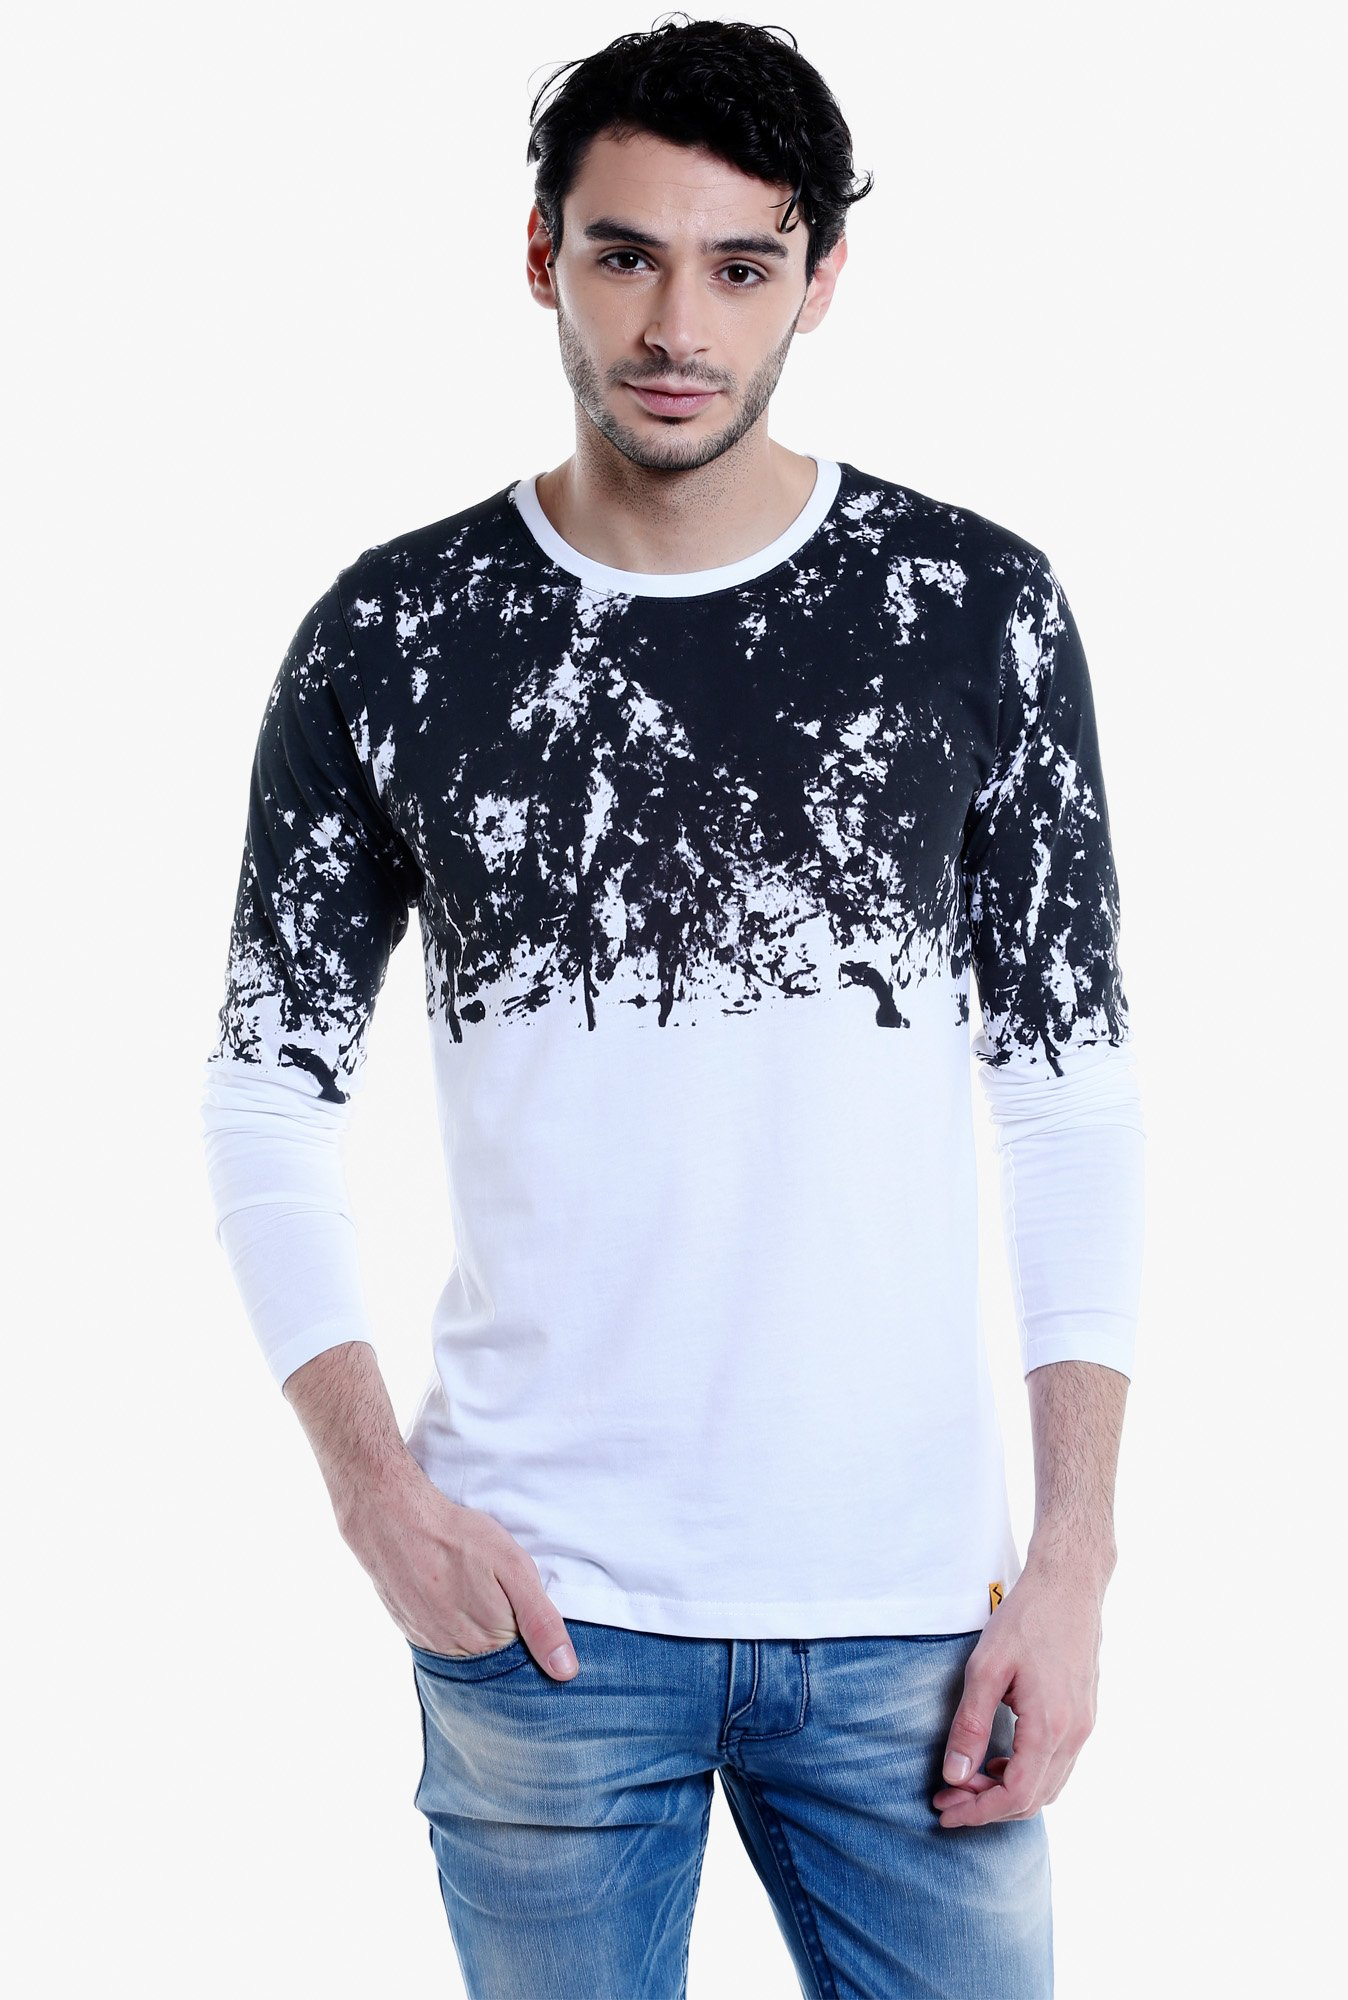 Campus Sutra White & Black Full Sleeves T-Shirt